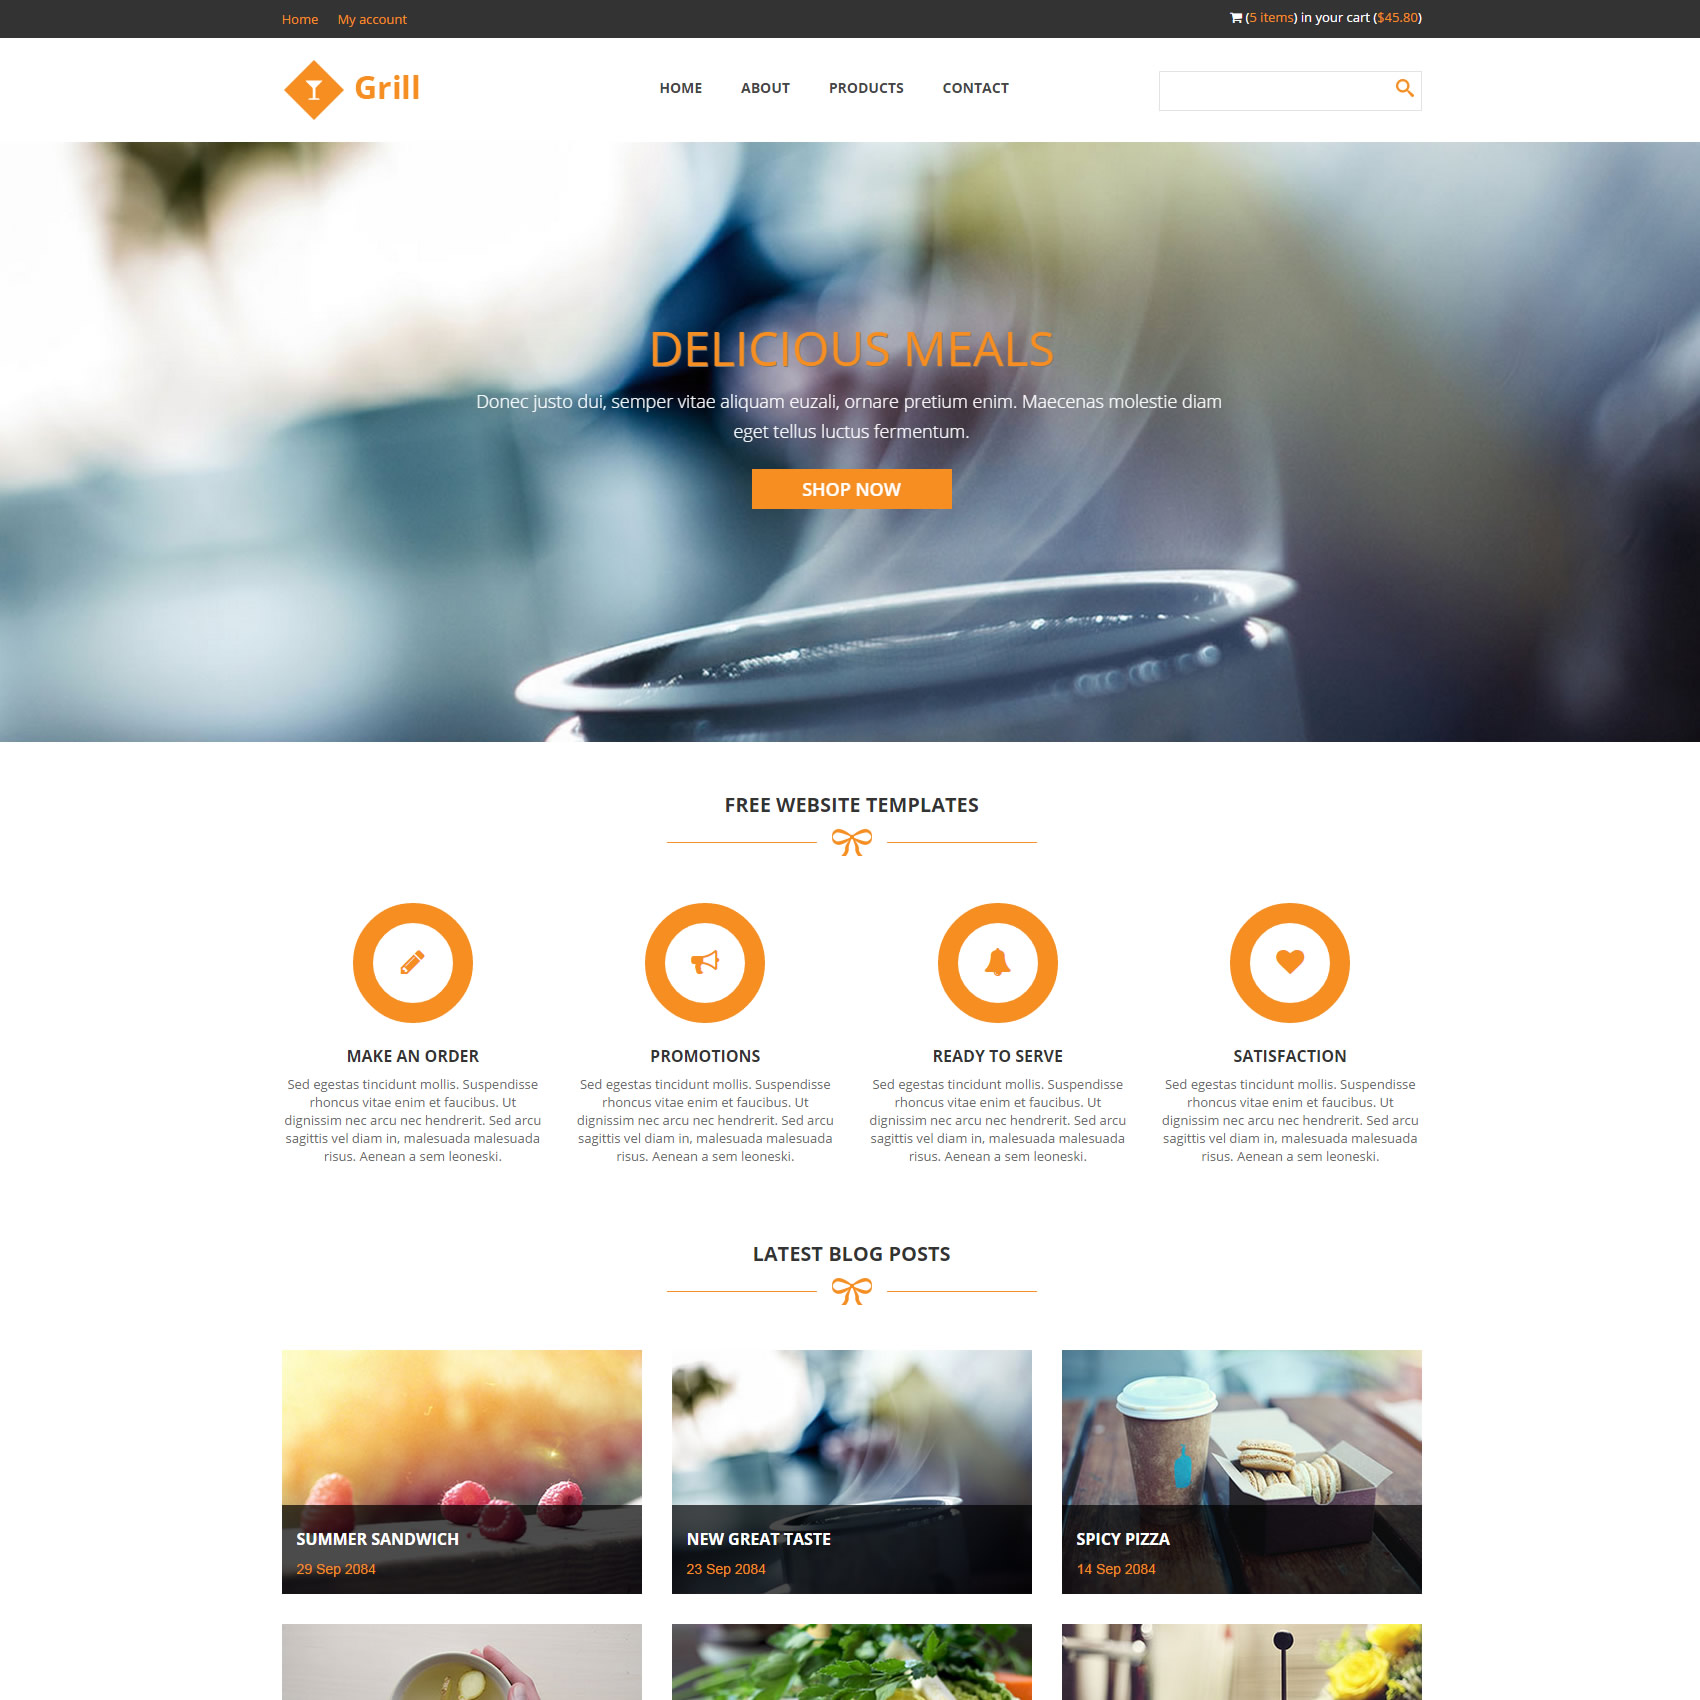 orange website templates by templatemo - Free Responsive Website Templates